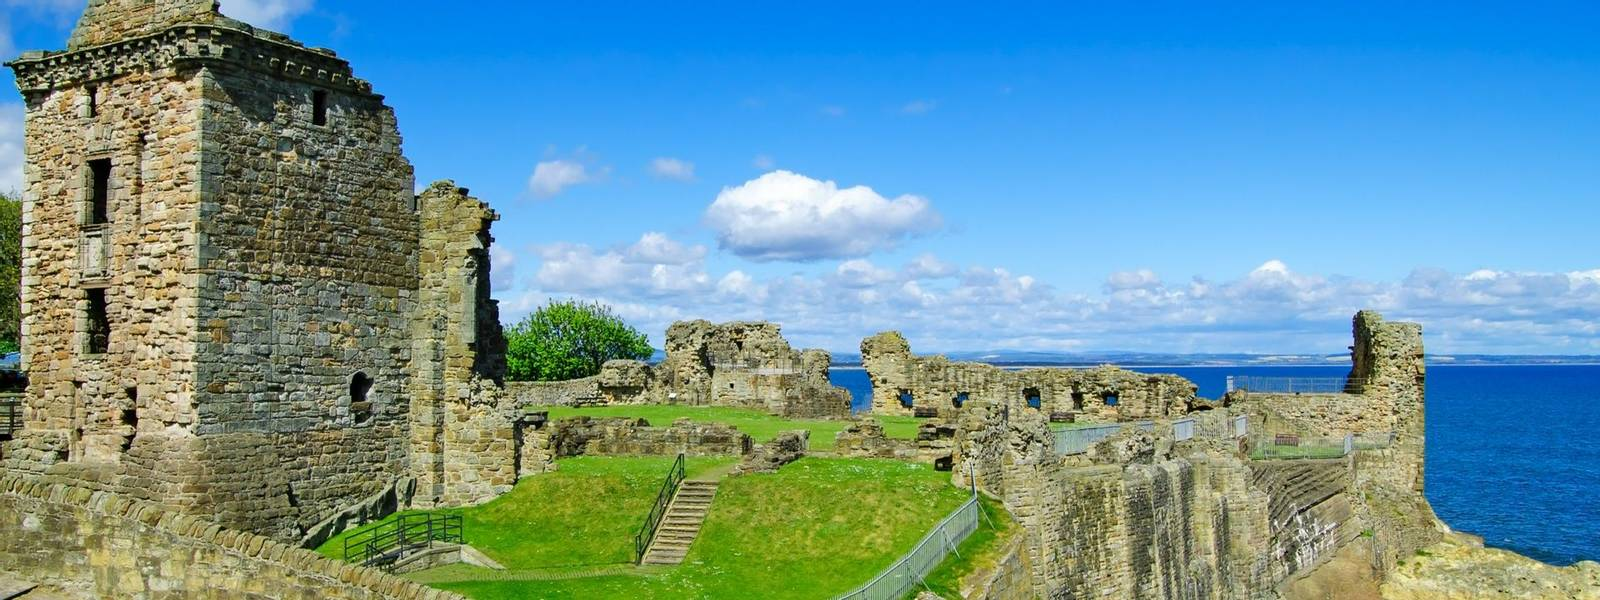 St Andrews Castle ruins medieval landmark. Fife, Scotland.